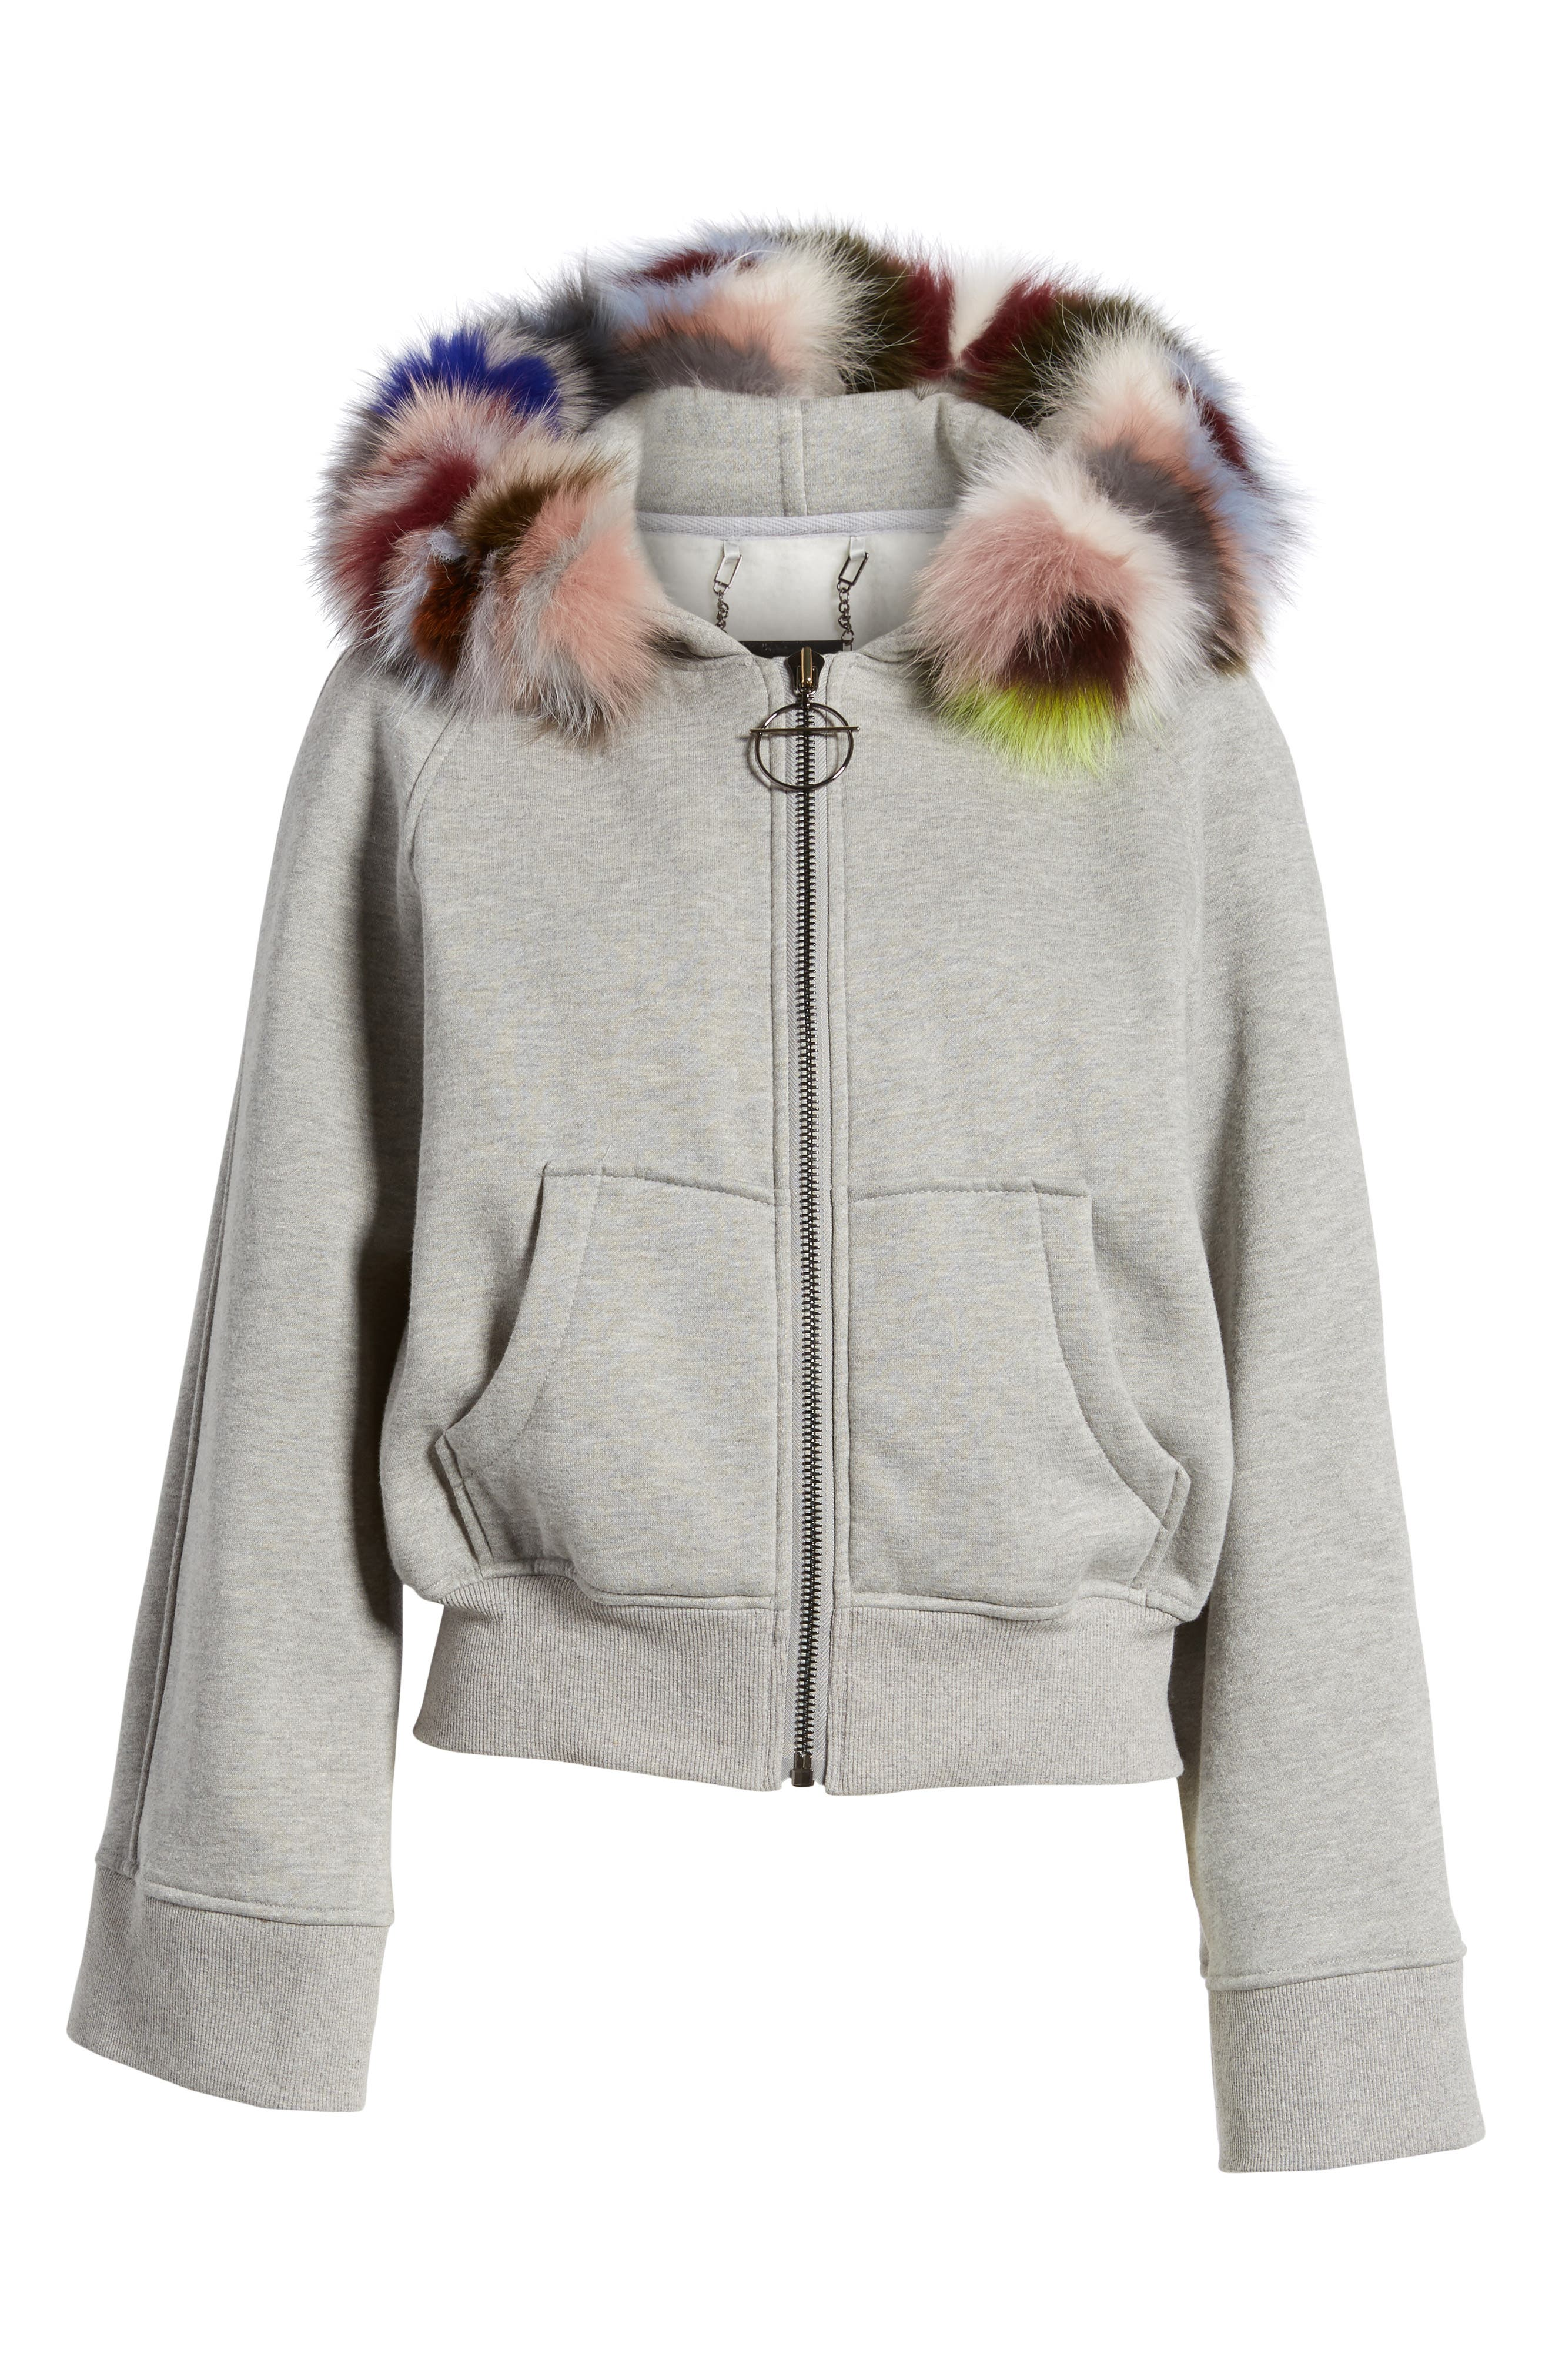 BAGATELLE.CITY The Luxe Hooded Jacket with Genuine Fox Fur Trim,                             Alternate thumbnail 13, color,